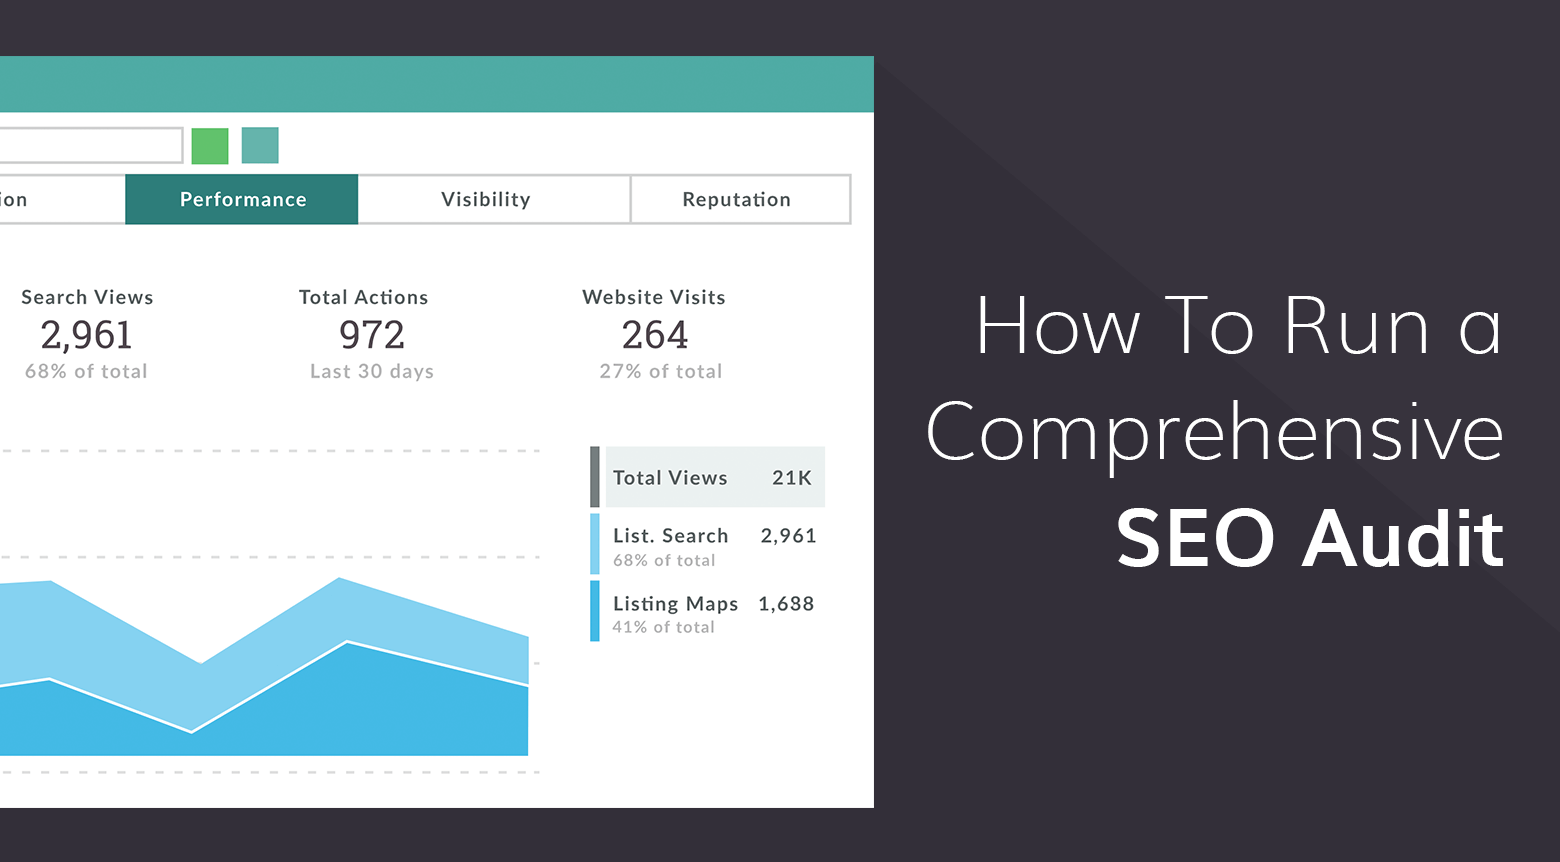 How To Run a Comprehensive SEO Audit